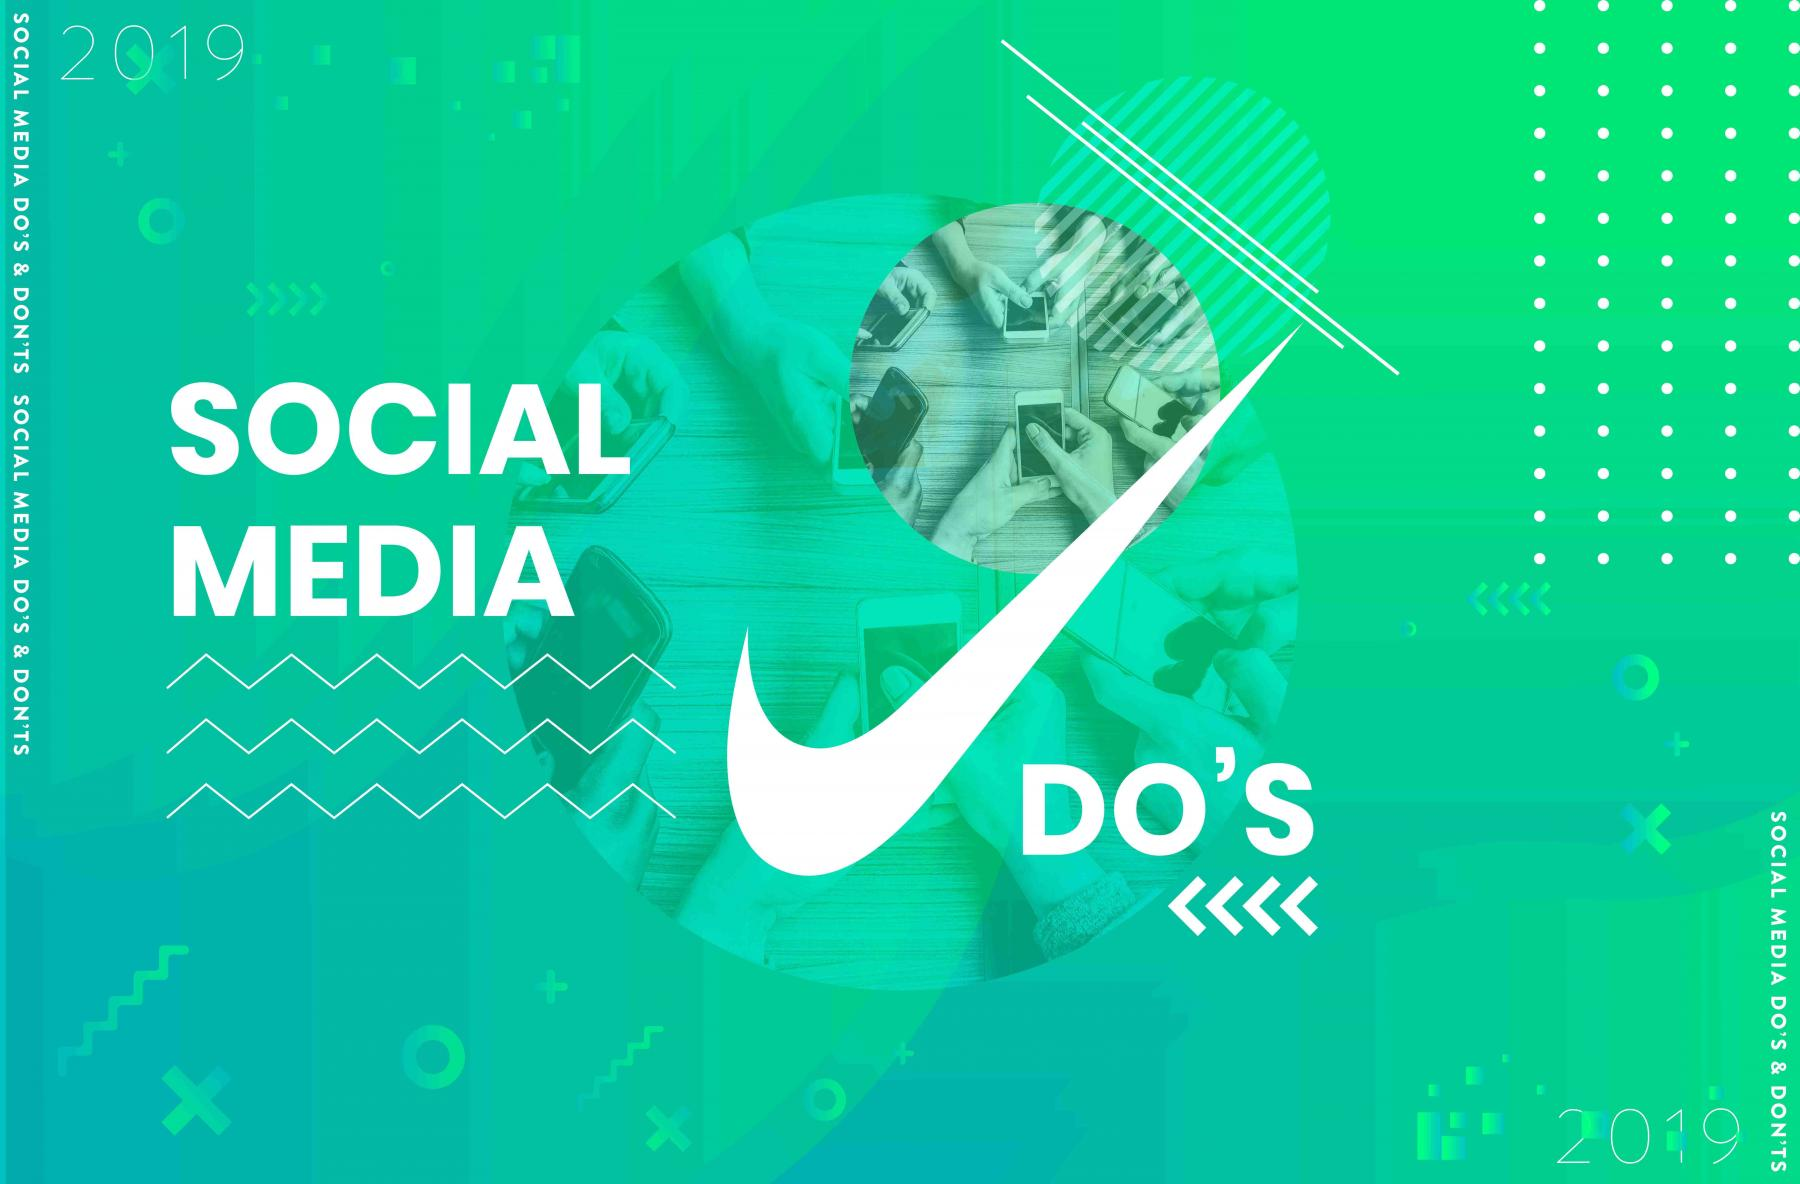 The do's of Social Media 2019